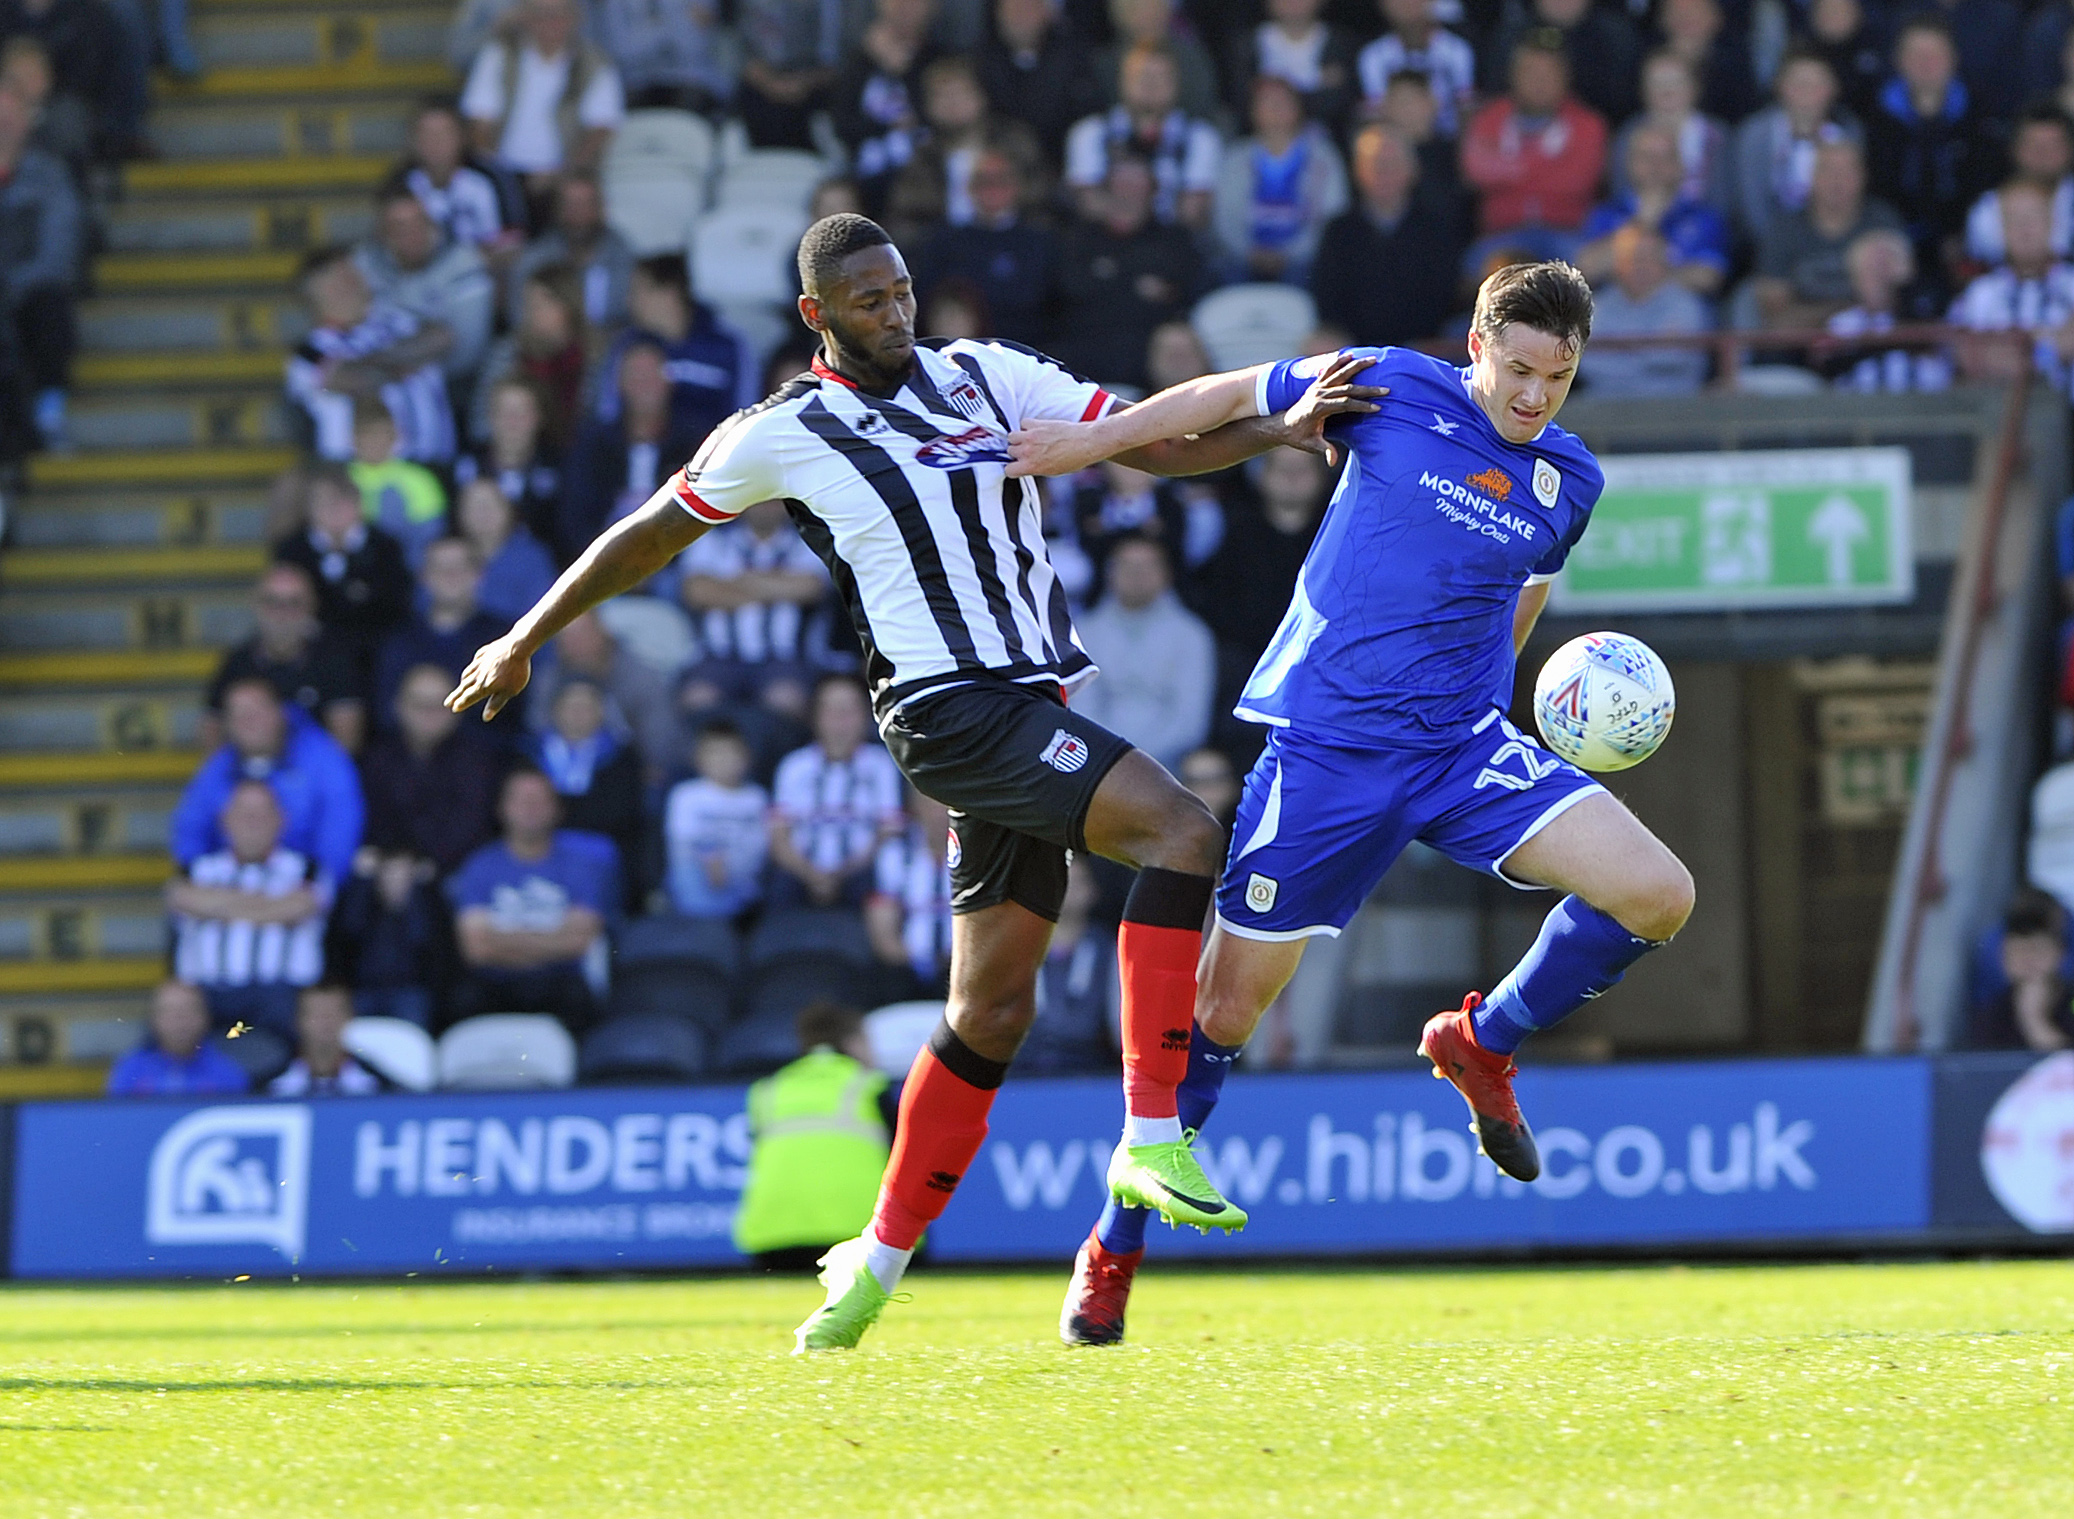 Crewe defender Eddie Nolan battles for possession with Grimsby striker Jamile Matt. Picture by Steve Finch